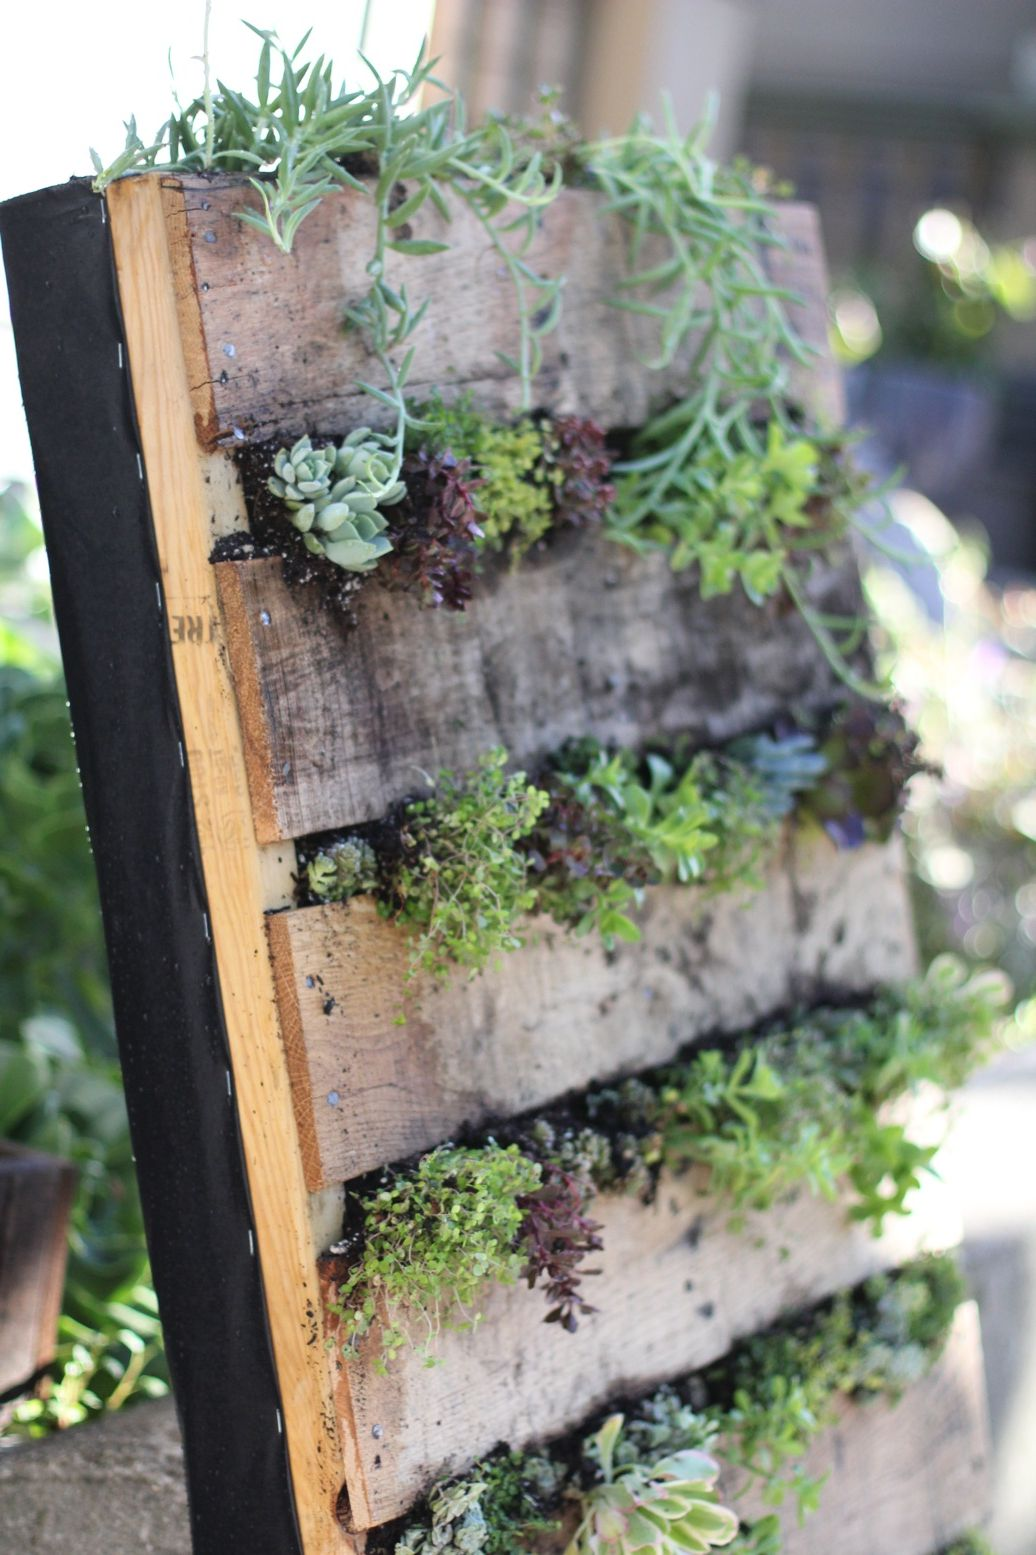 Excellent use for old pallets!